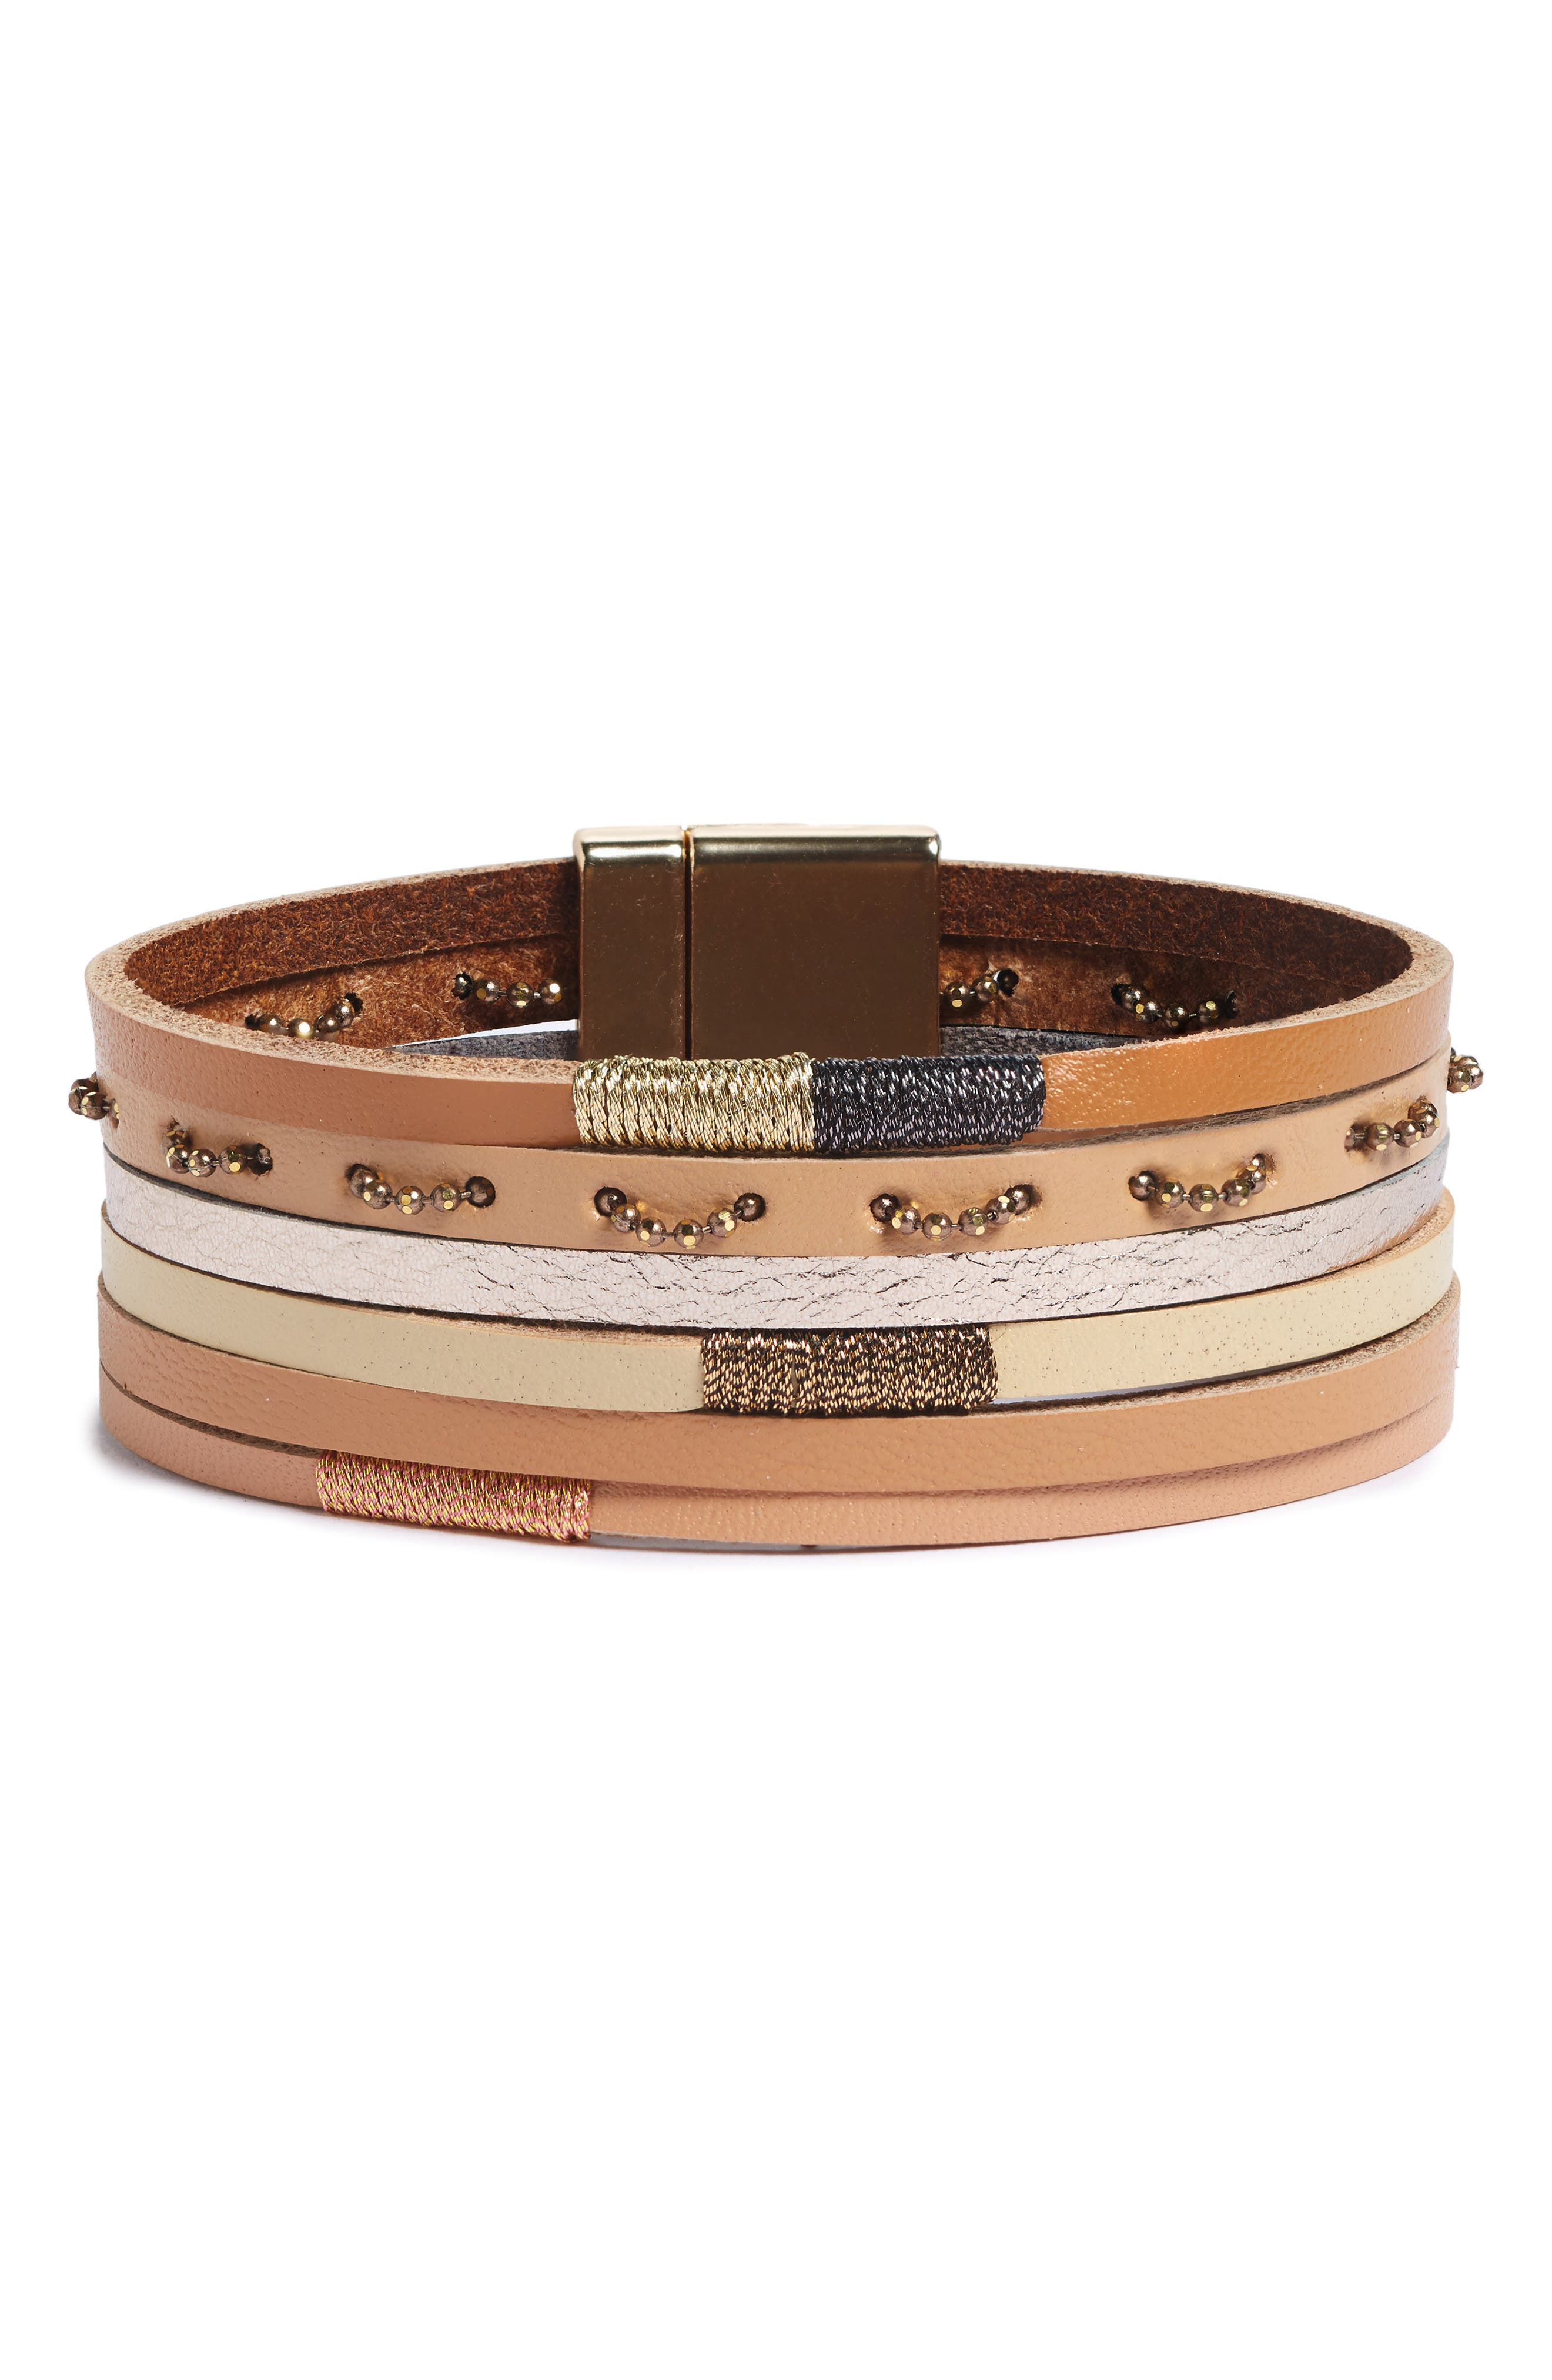 Multi Row Leather Bracelet,                             Main thumbnail 1, color,                             900